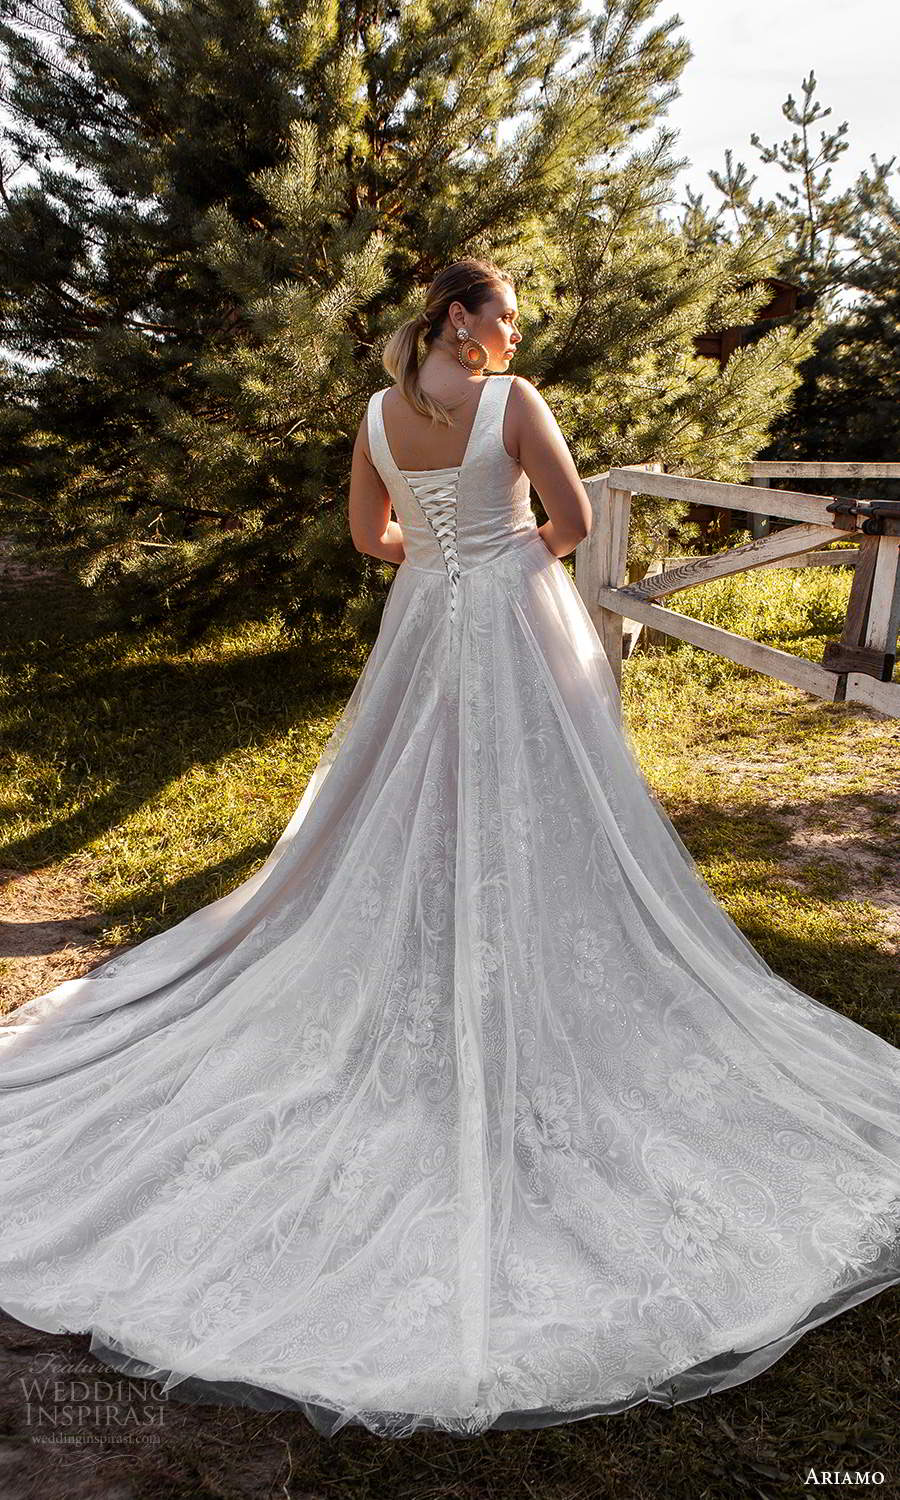 ariamo 2021 plus bridal sleeveless plunging v neckline embellished a line ball gown wedding dress chapel train (8) bv